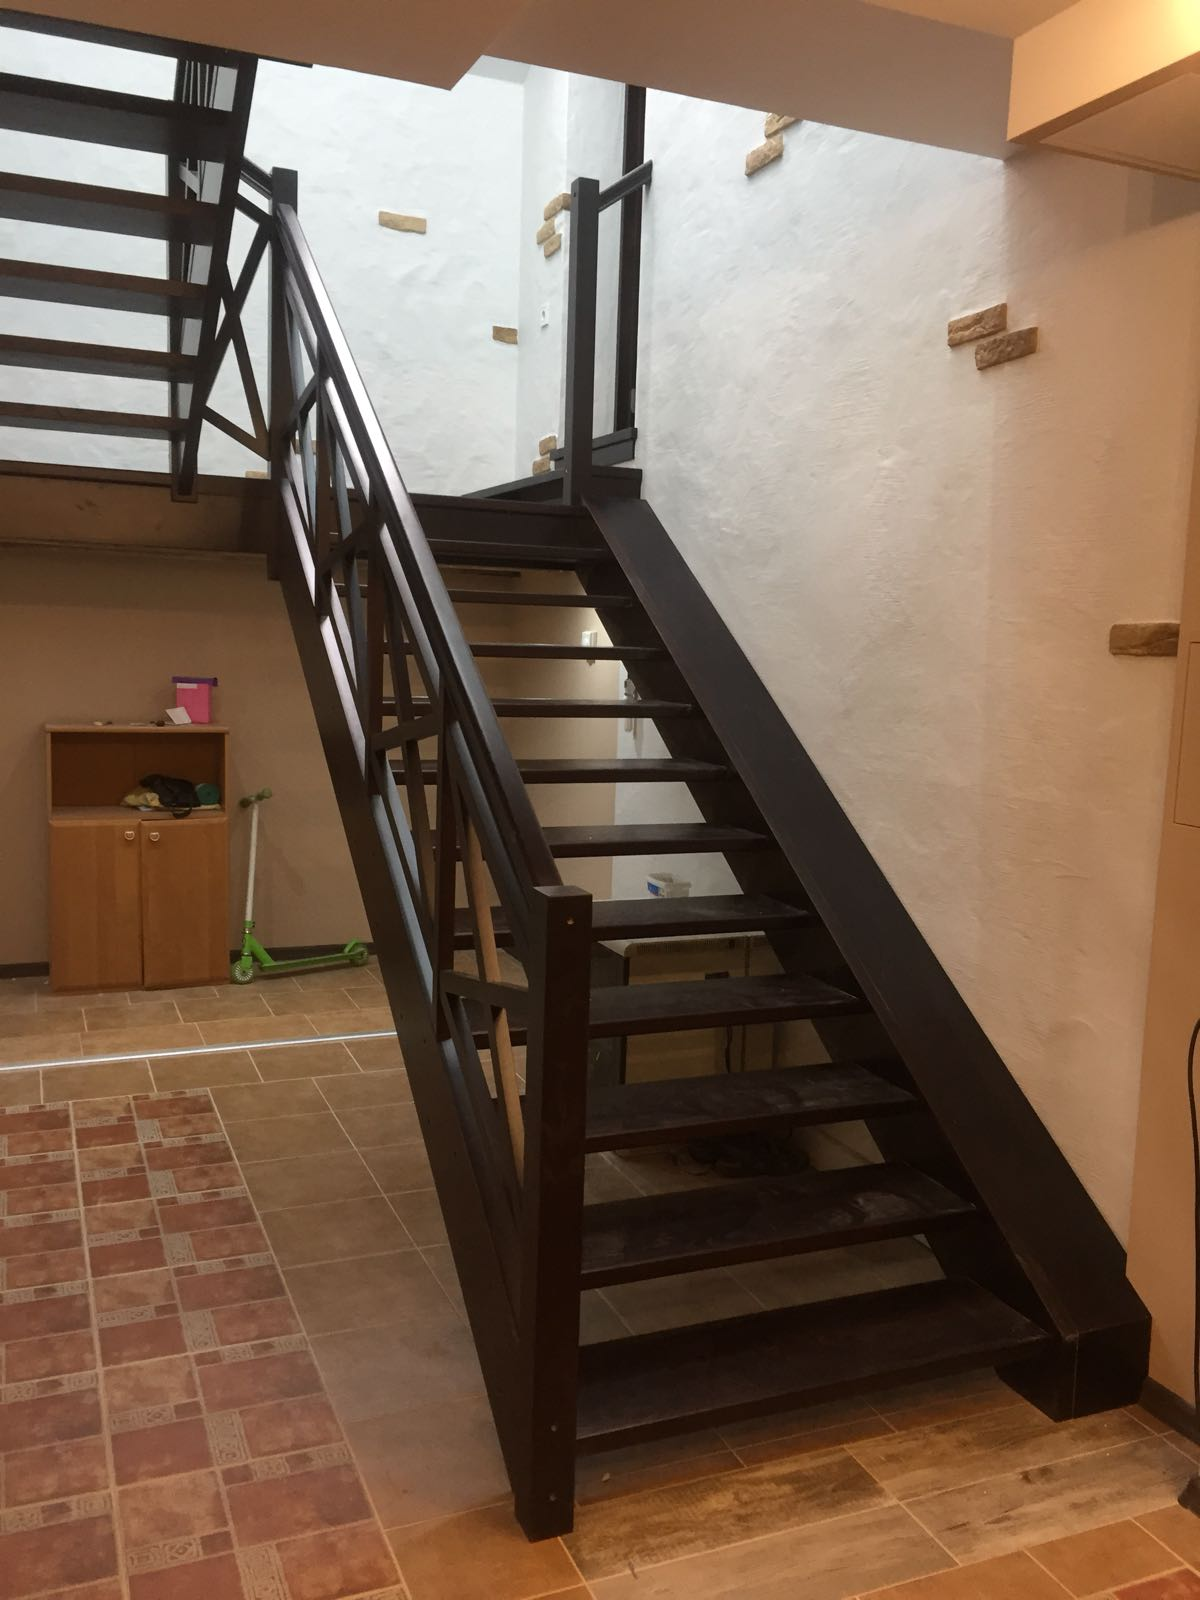 Stairs We Produce For Our Clients. We Offer Ready Made Stairs From Our  Designs, Or We Can Work With Your Specific Design Of Custom Built Stairs.